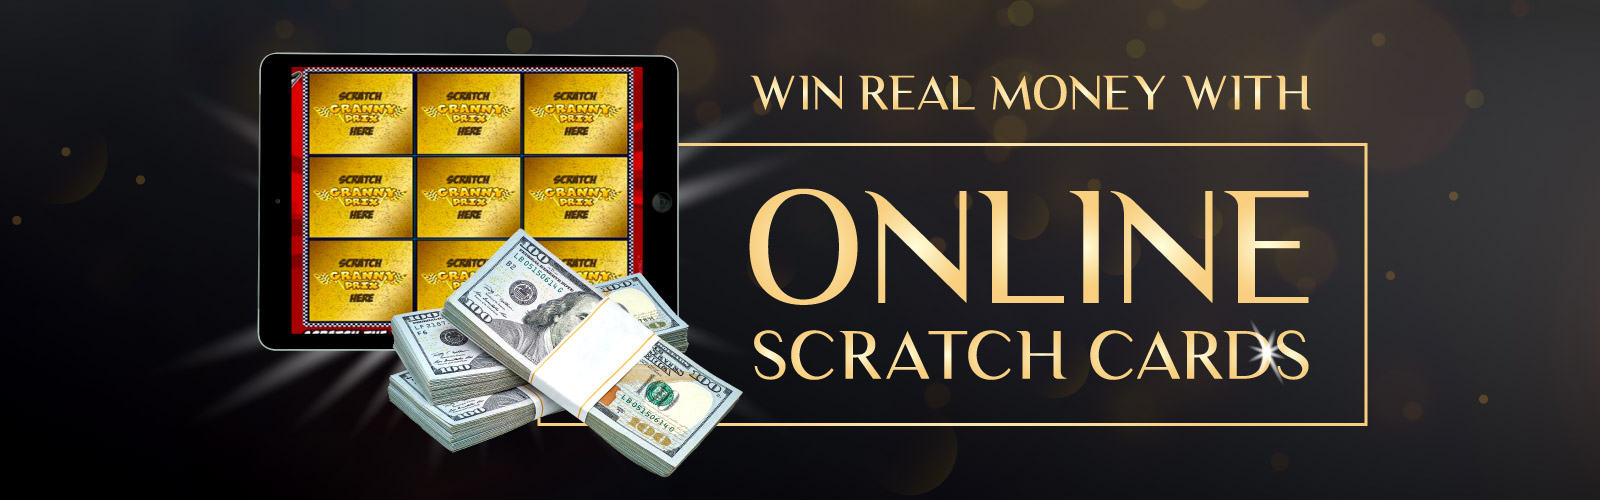 Win Real Money With Online Scratch Cards